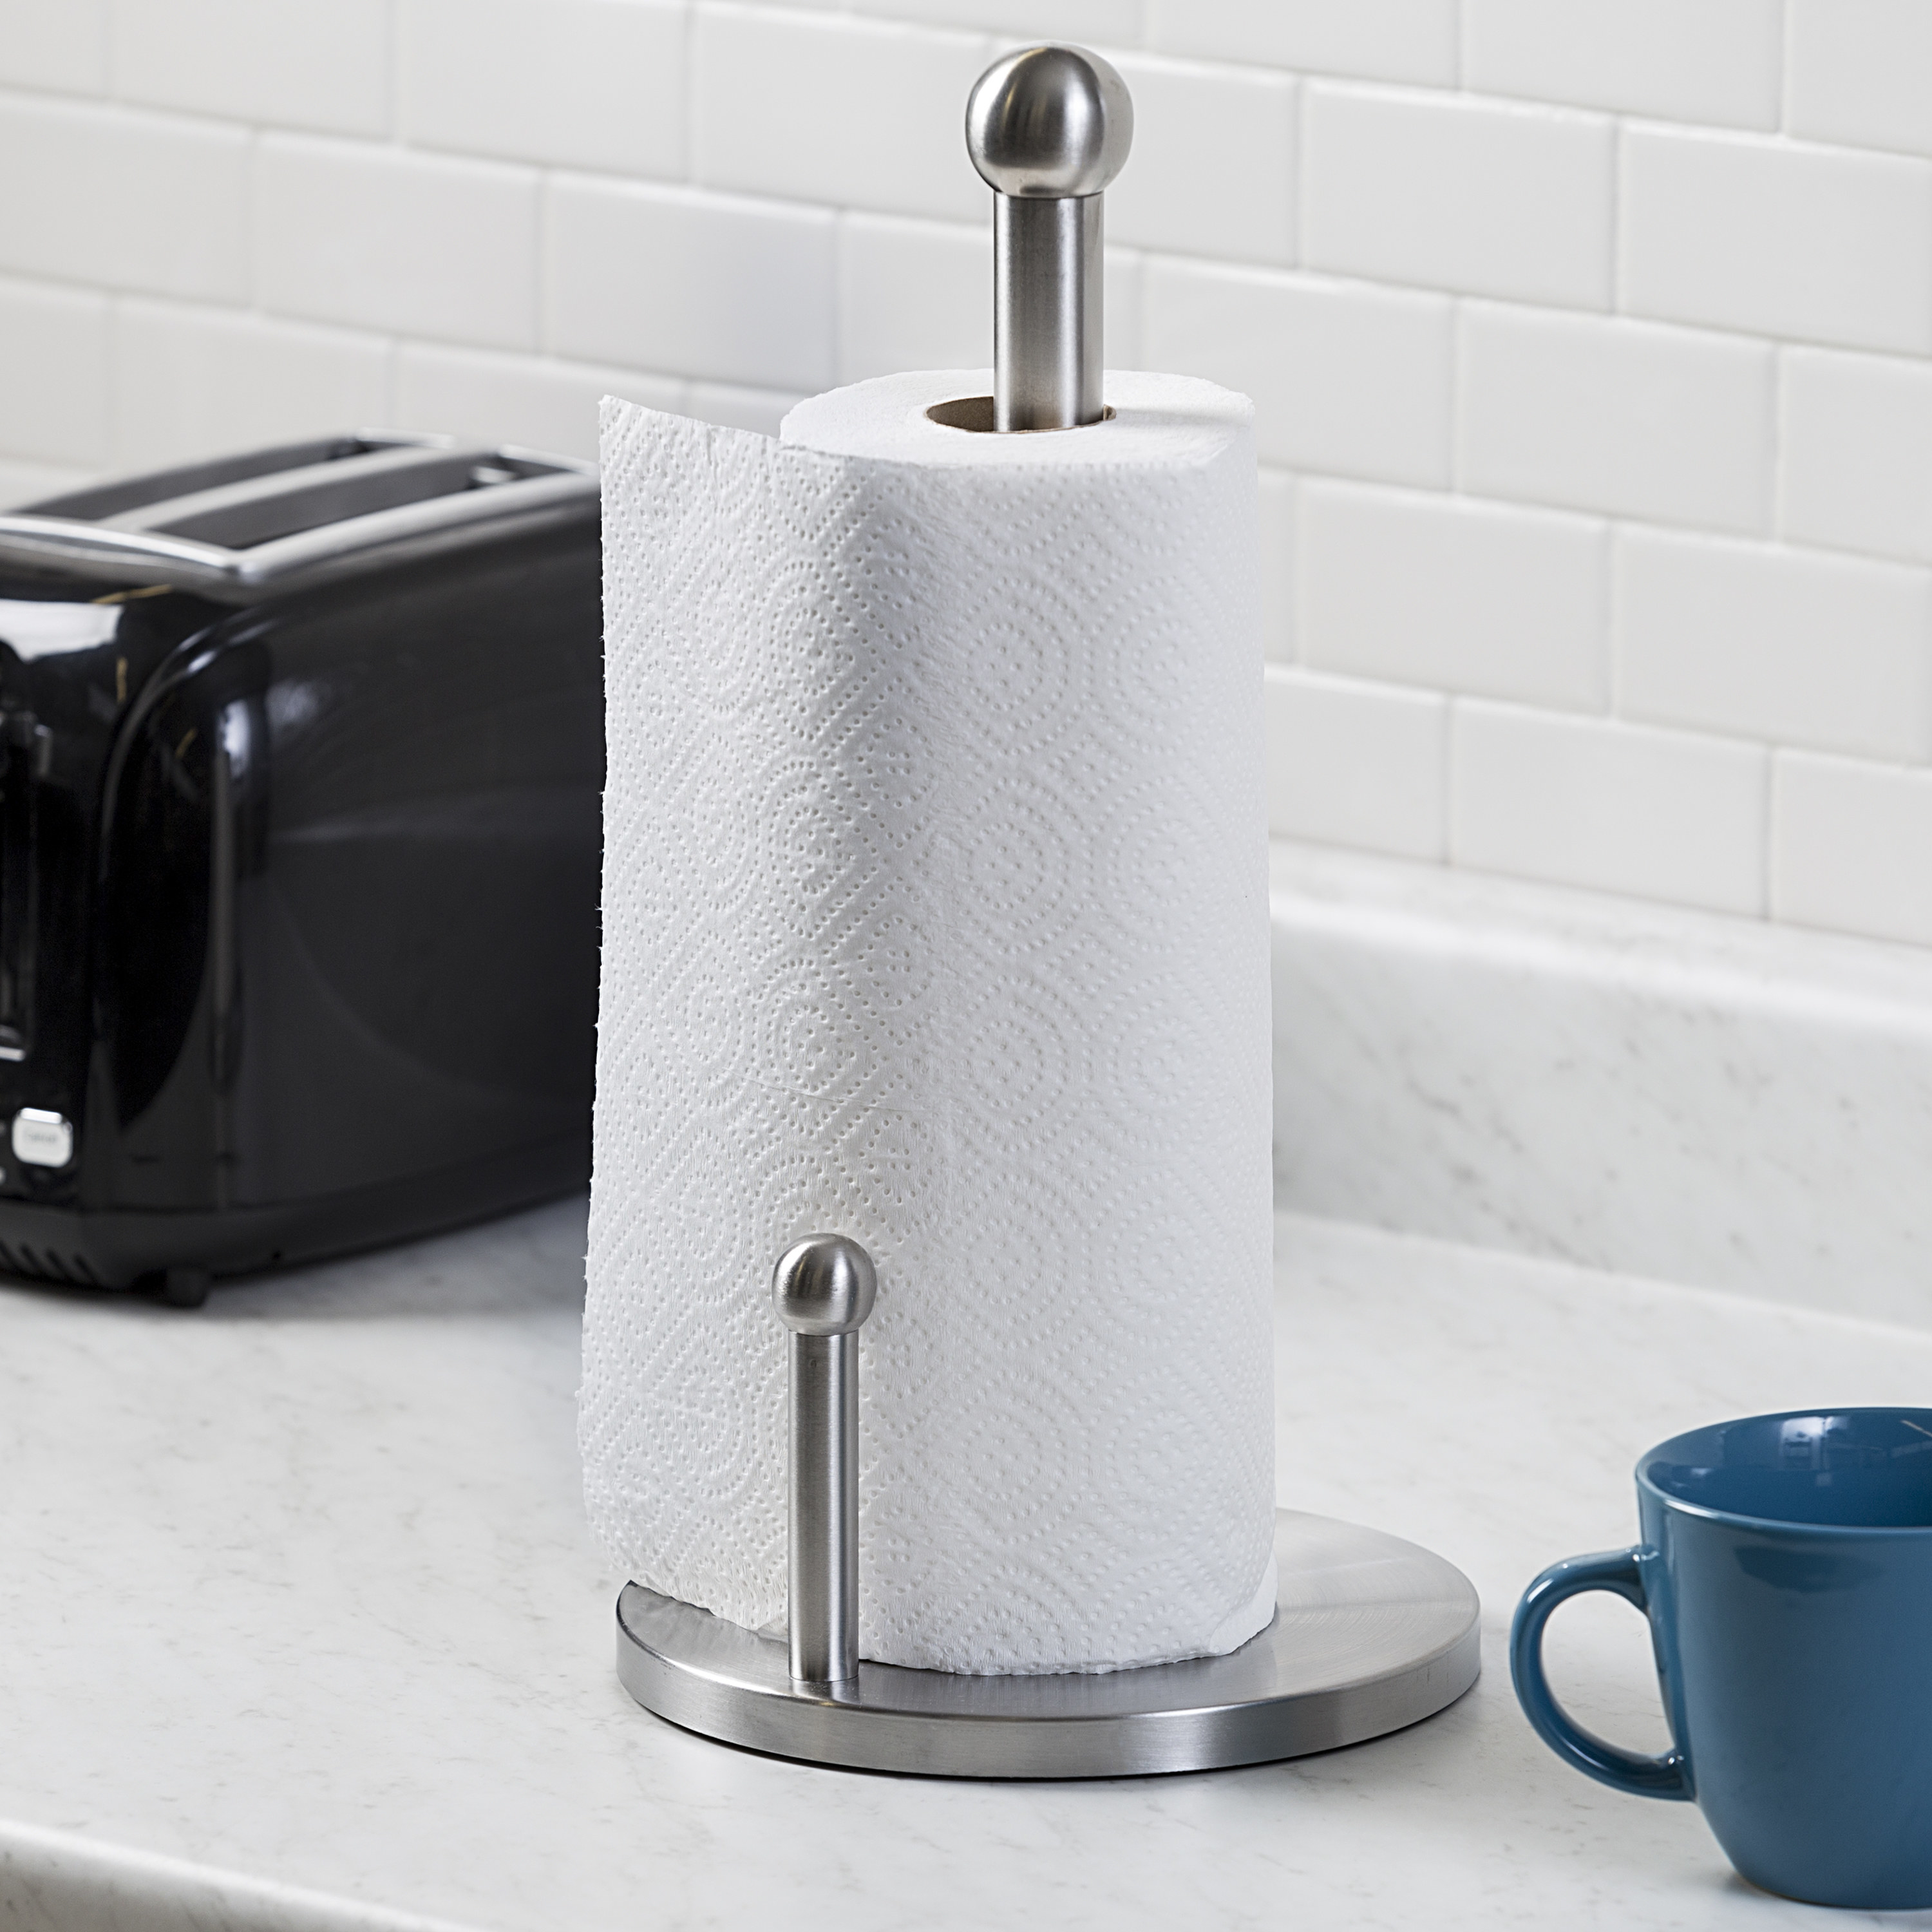 stainless steel paper towel holder with a roll of paper towels in it, sitting on a counter